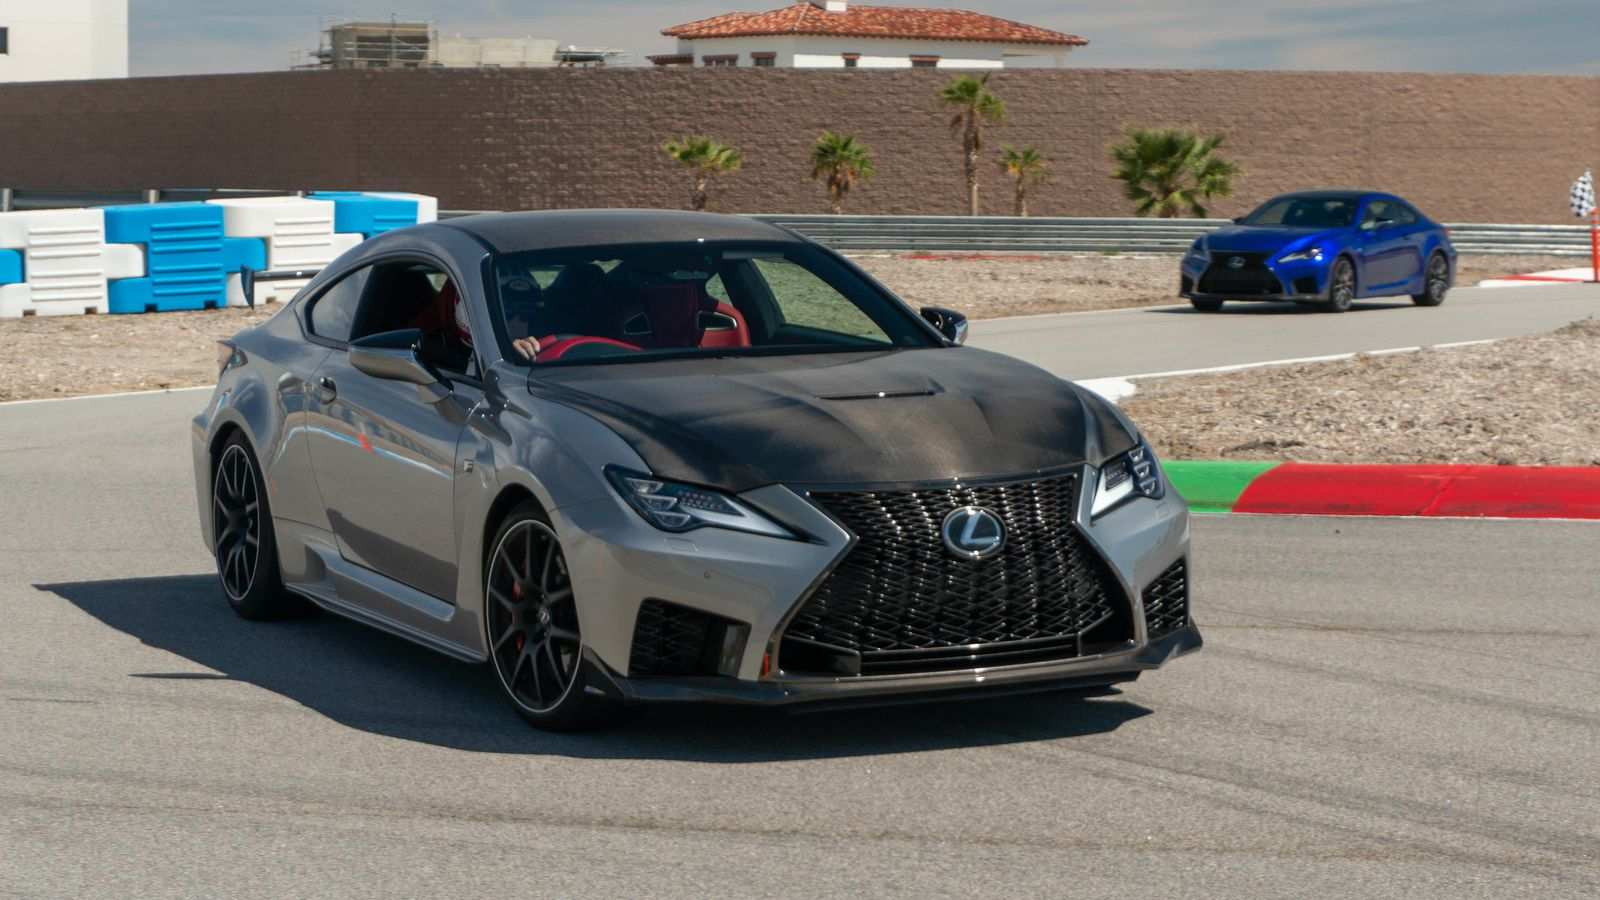 27 Great 2020 Lexus Rc F Track Edition Price Specs and Review for 2020 Lexus Rc F Track Edition Price